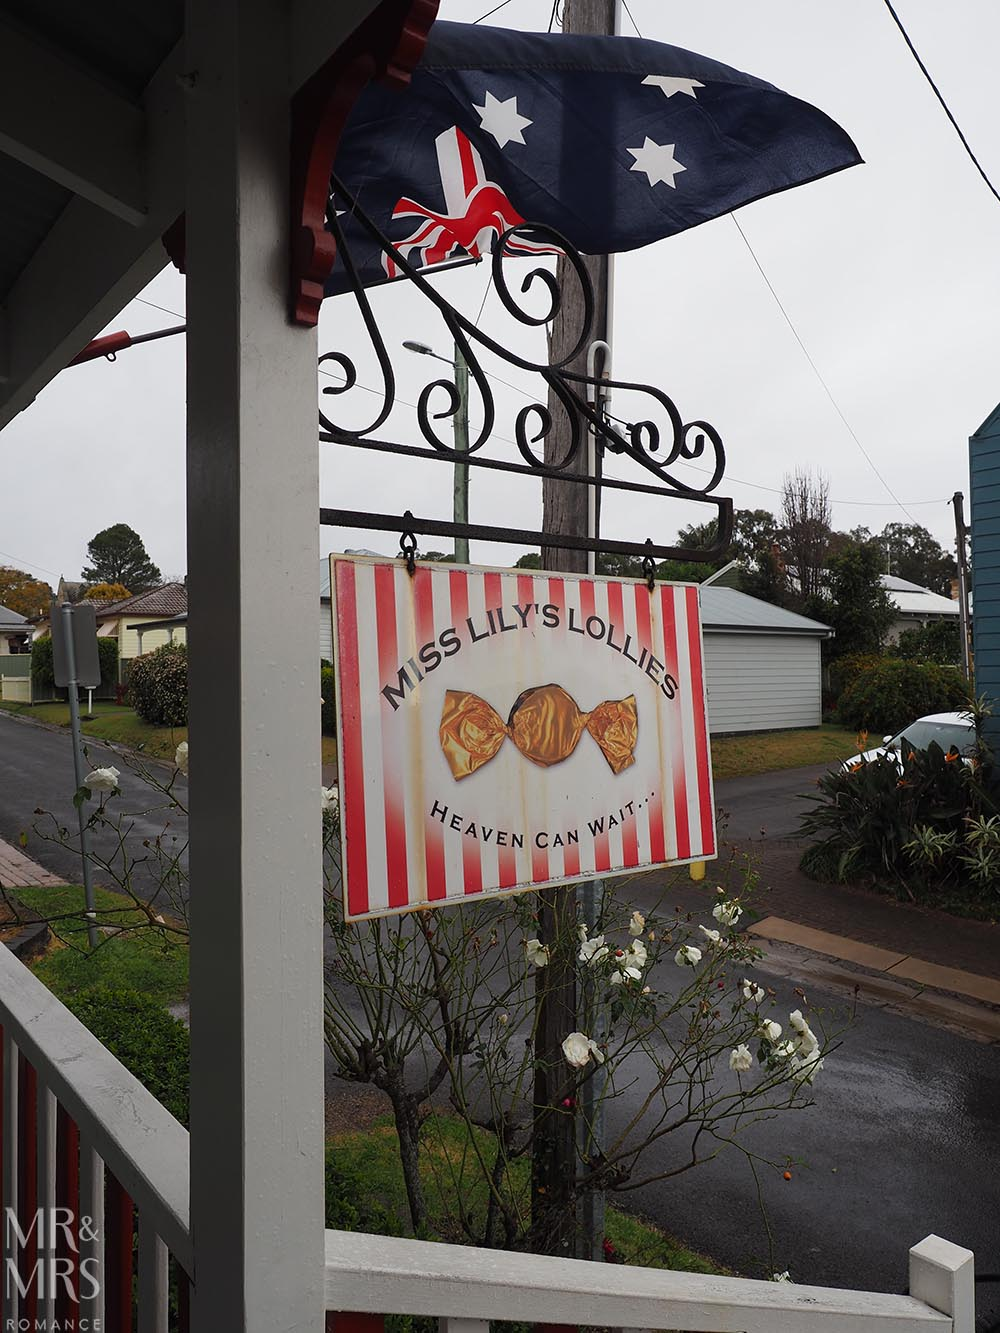 Miss Lily's Lollies, Morpeth, NSW